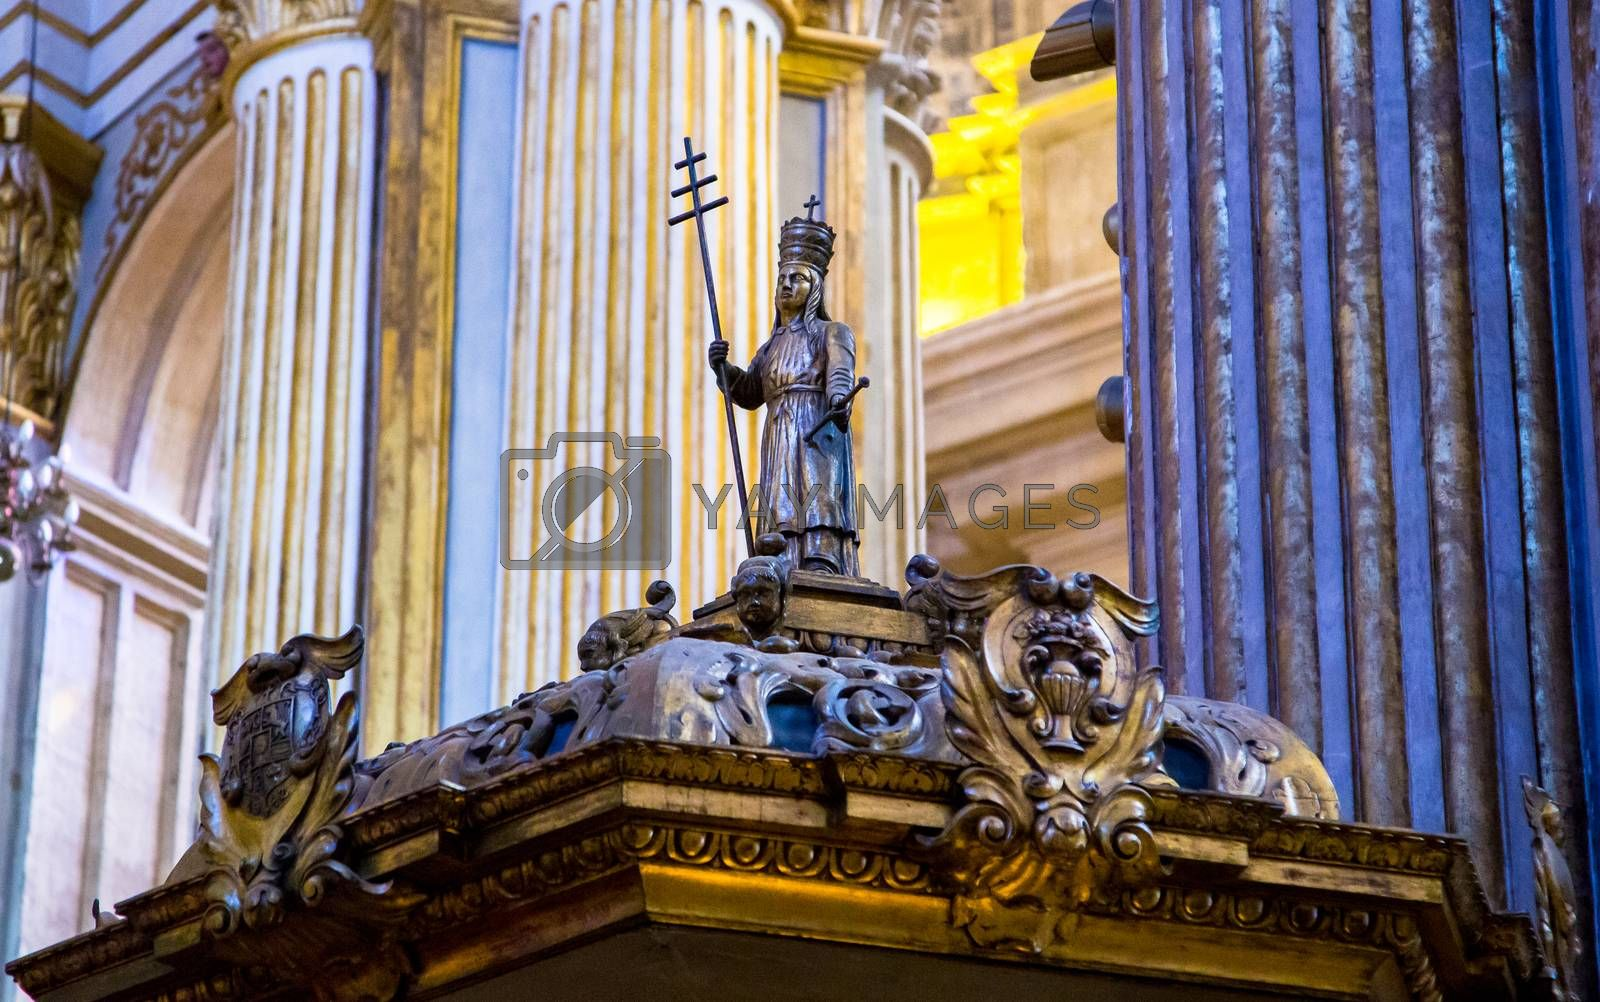 Near the alter in Malaga Cathedral.